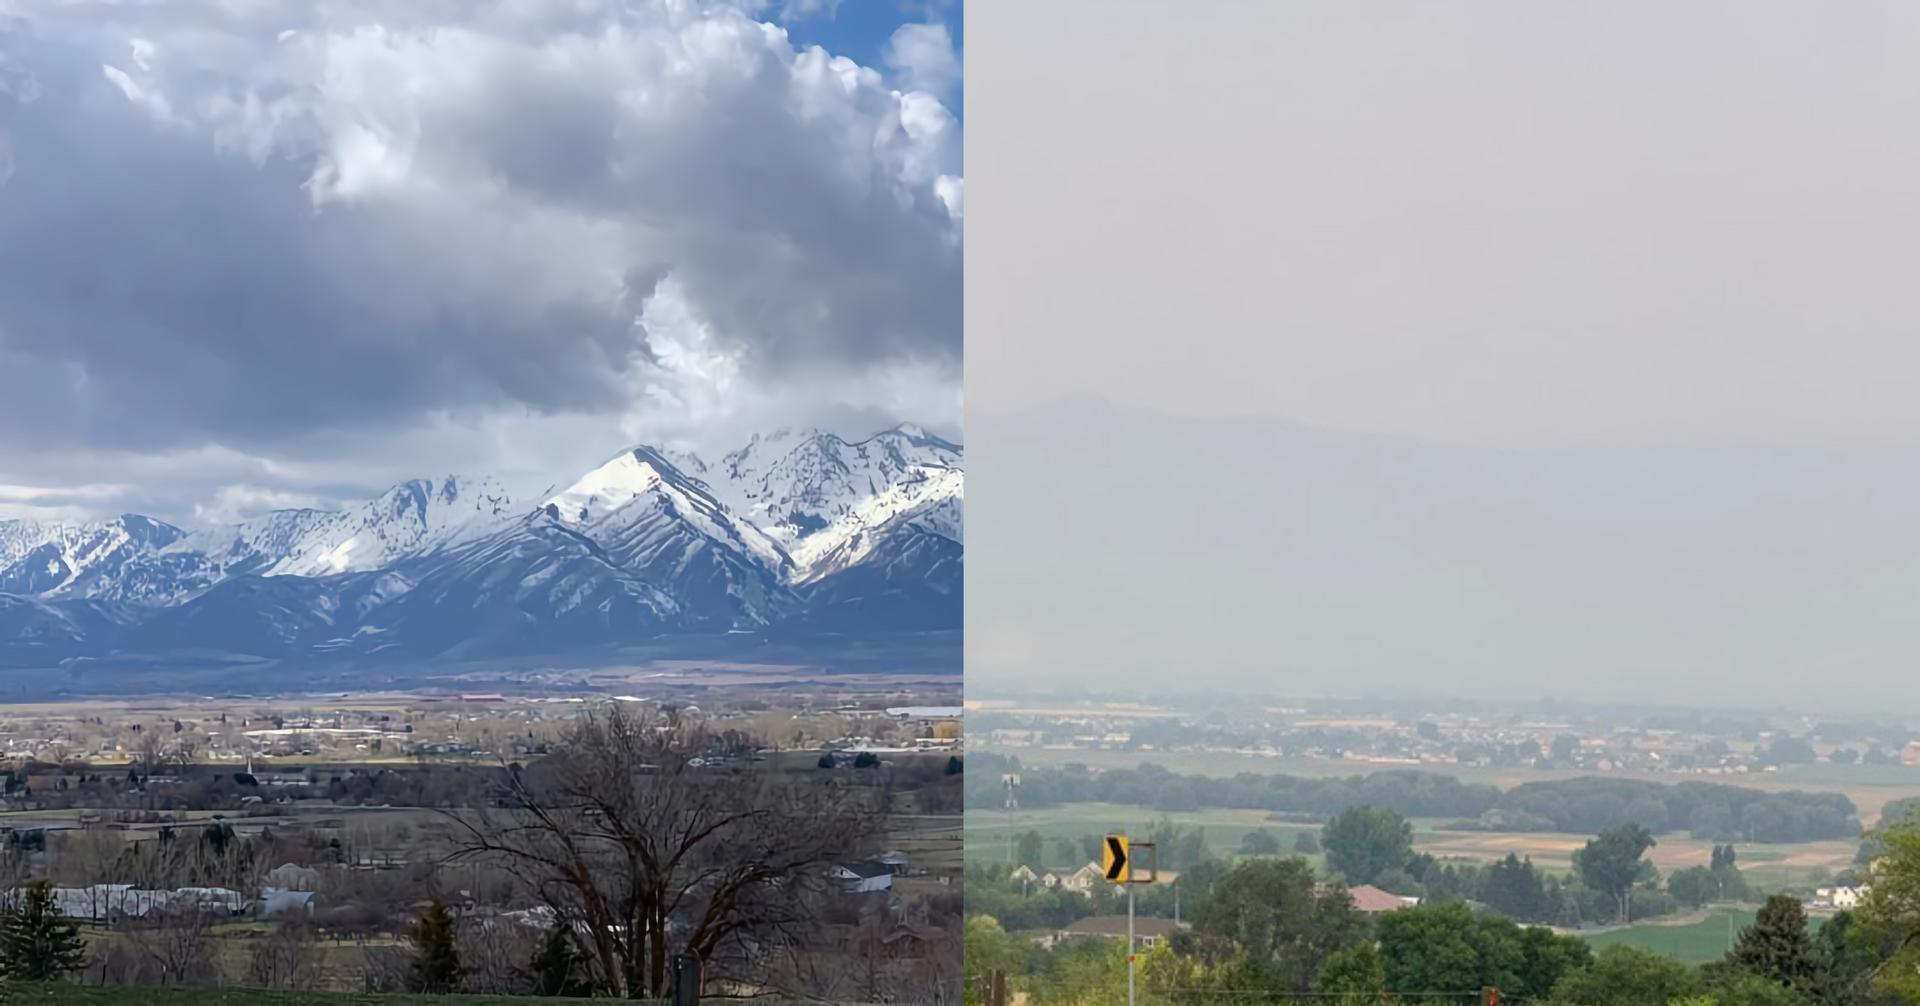 Comparison of Wellville mountains before and during smoky days